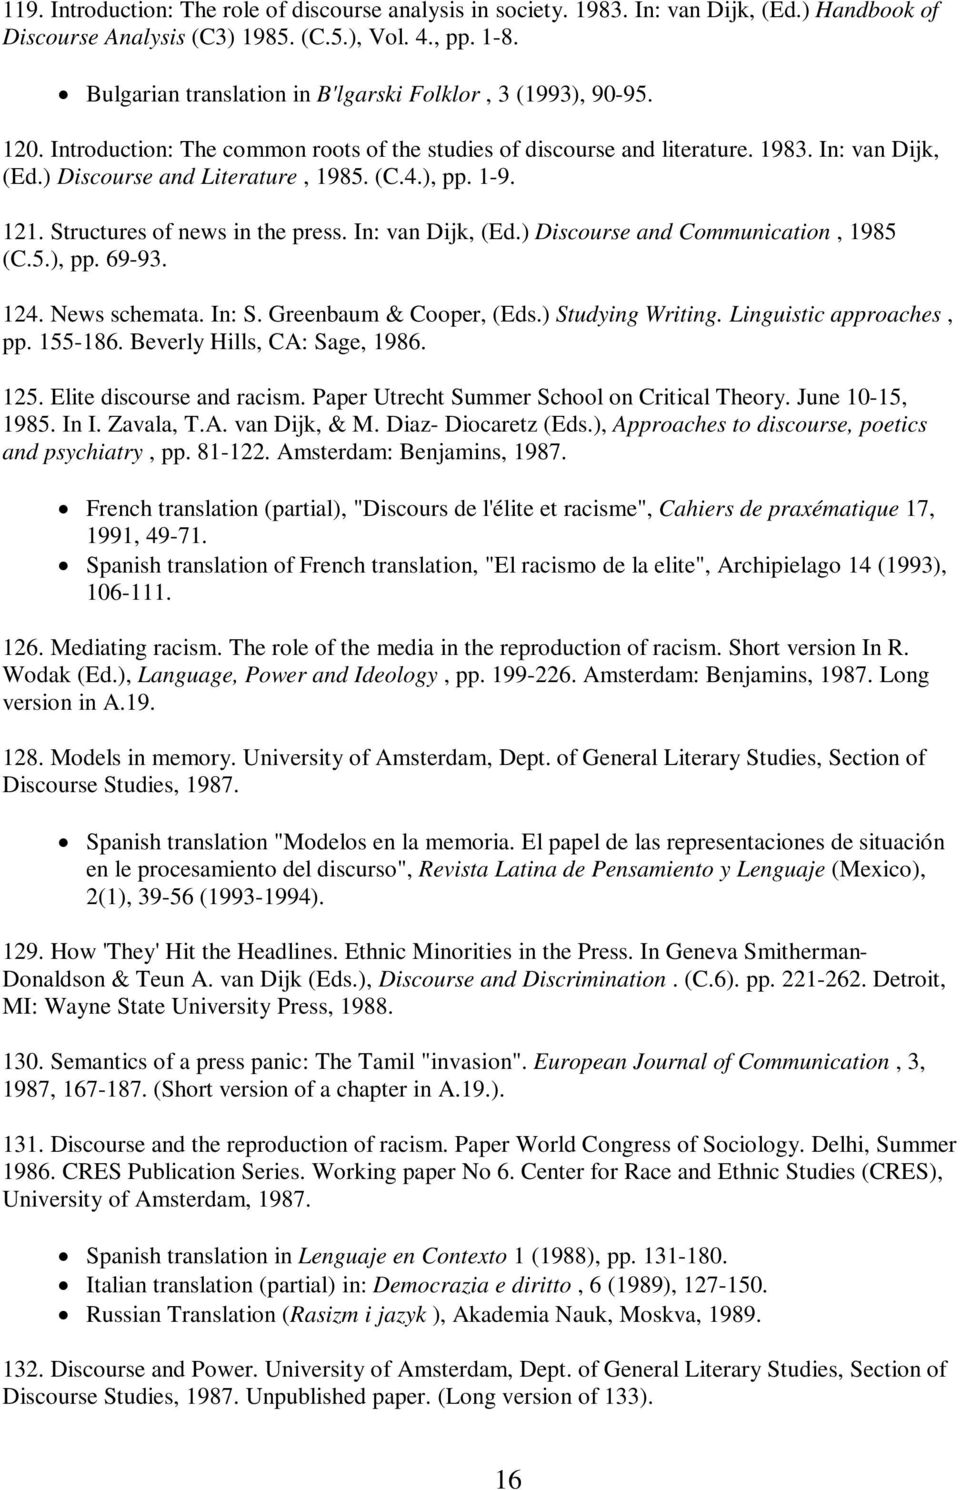 (C.4.), pp. 1-9. 121. Structures of news in the press. In: van Dijk, (Ed.) Discourse and Communication, 1985 (C.5.), pp. 69-93. 124. News schemata. In: S. Greenbaum & Cooper, (Eds.) Studying Writing.